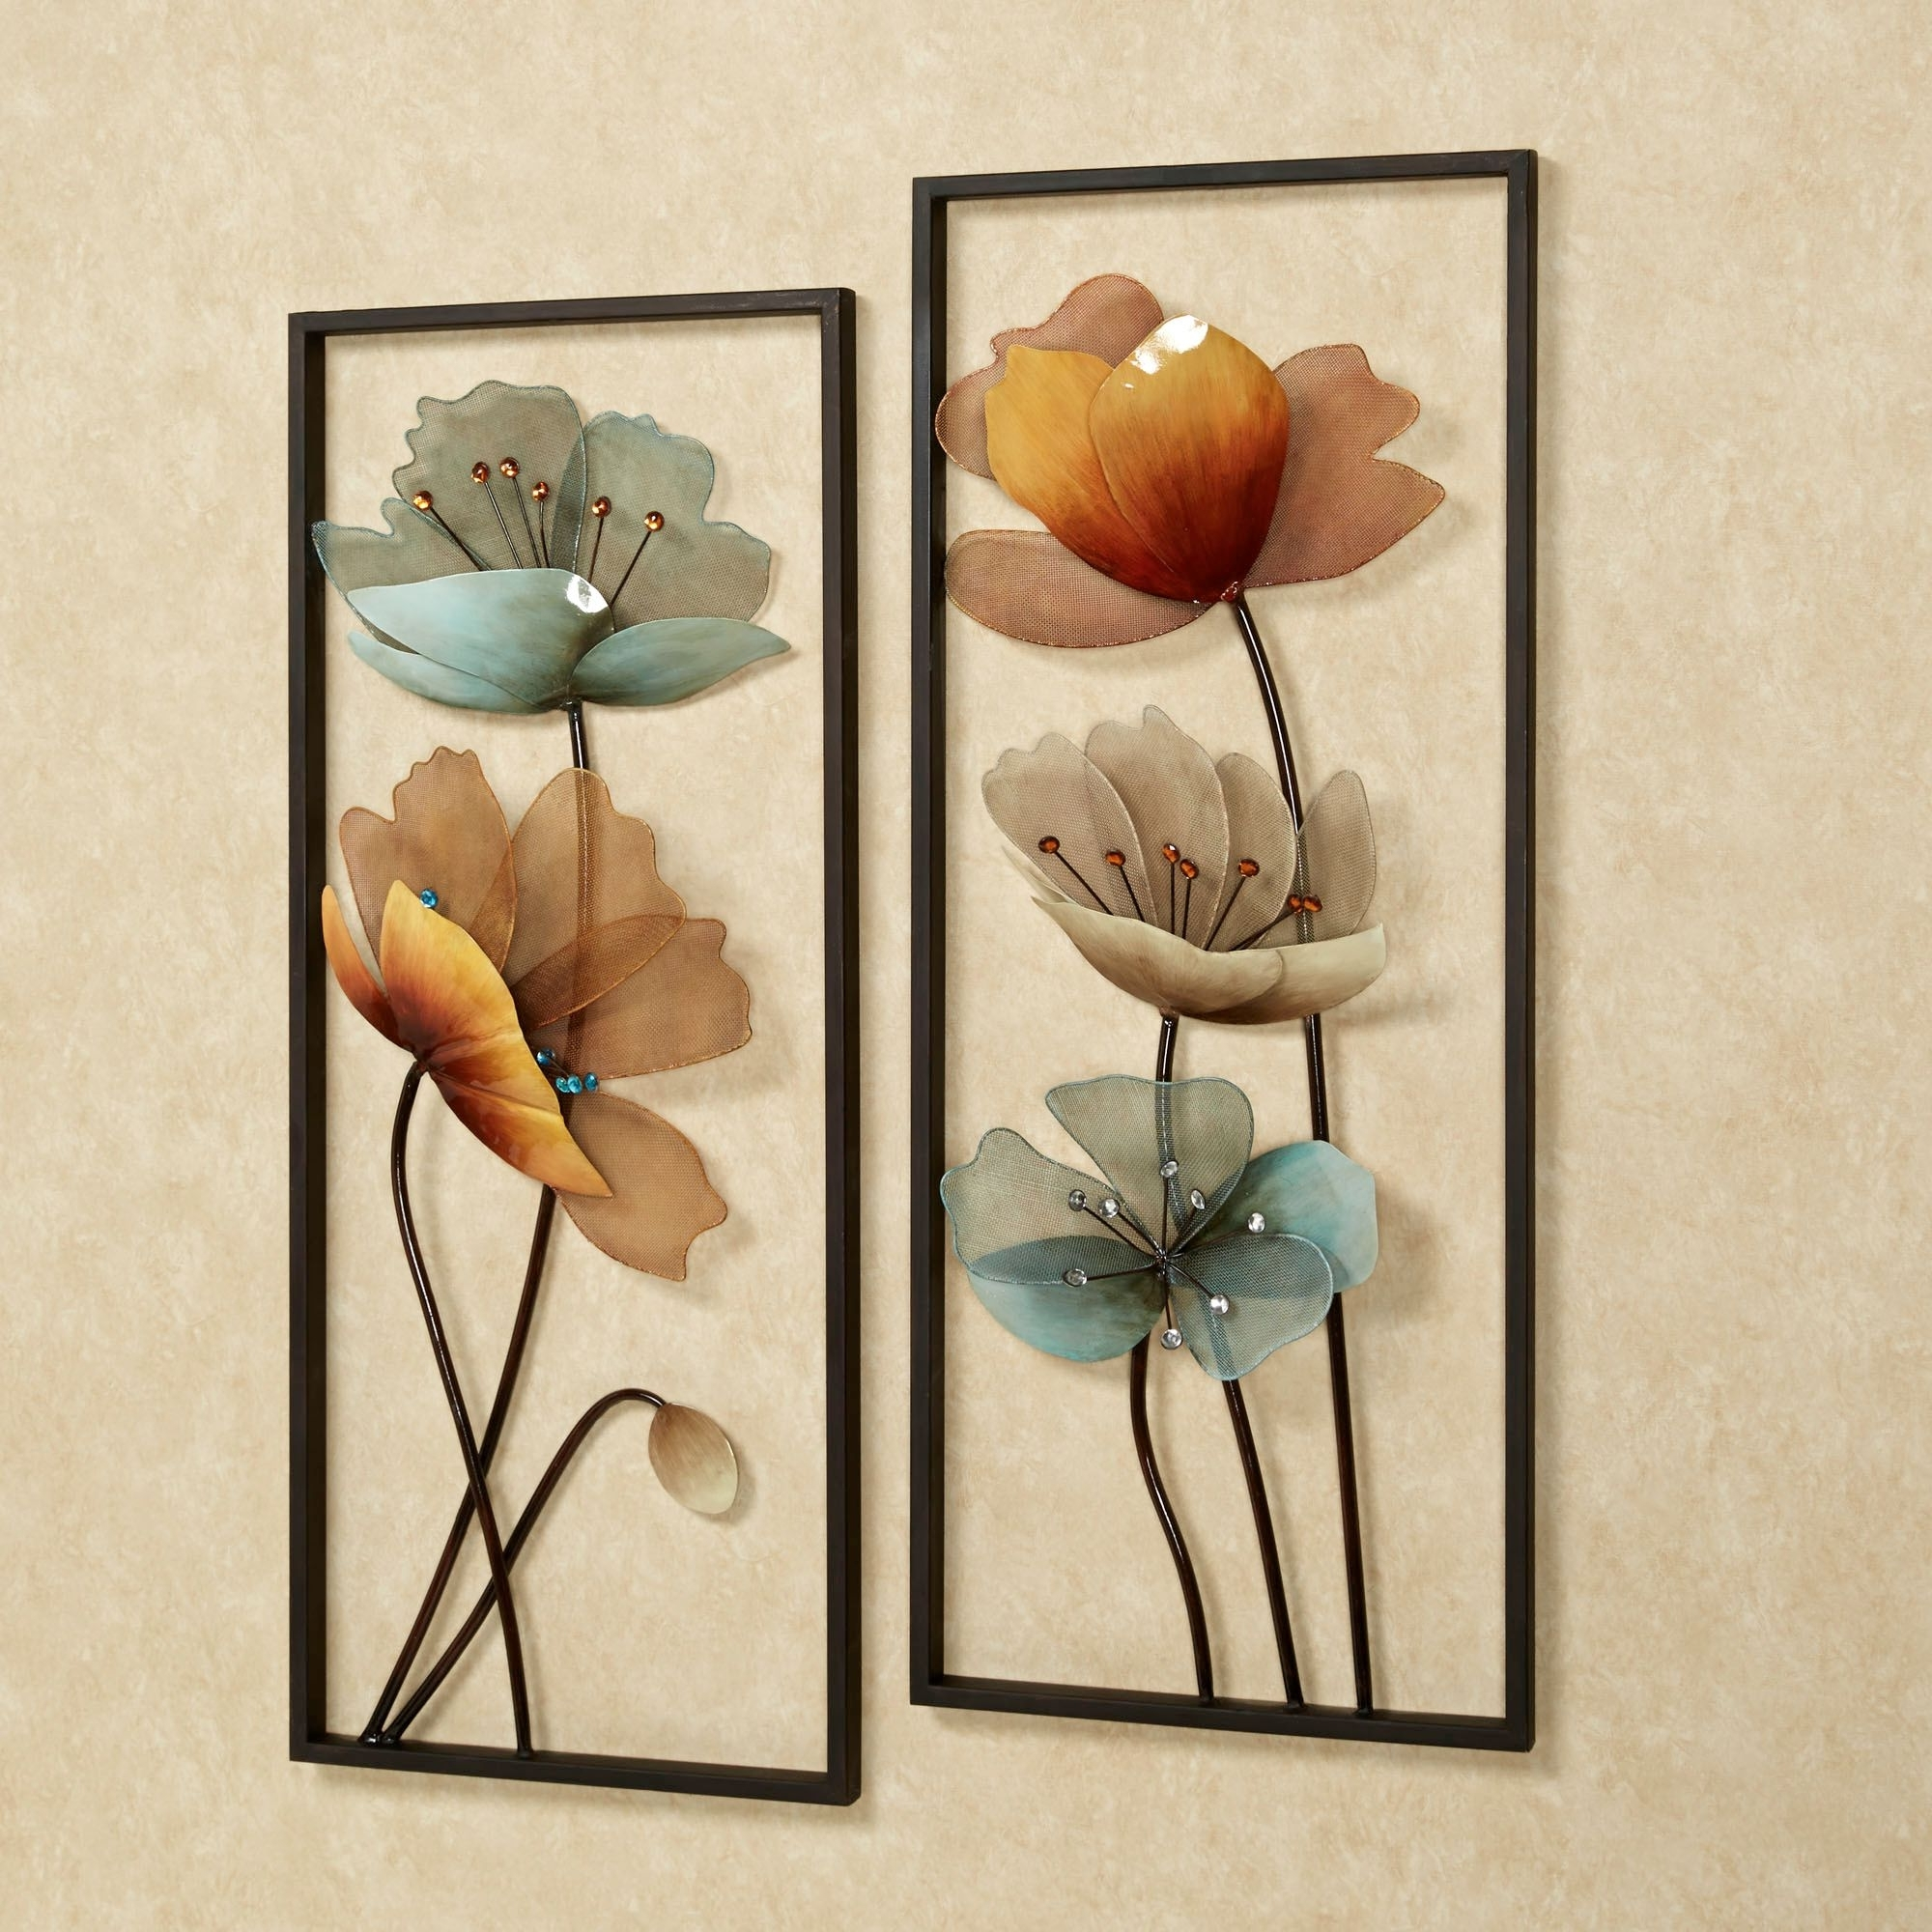 Metal Wall Accents In Well Liked Glamorous Metal Wall Accents With Art For Modern Home (View 11 of 15)